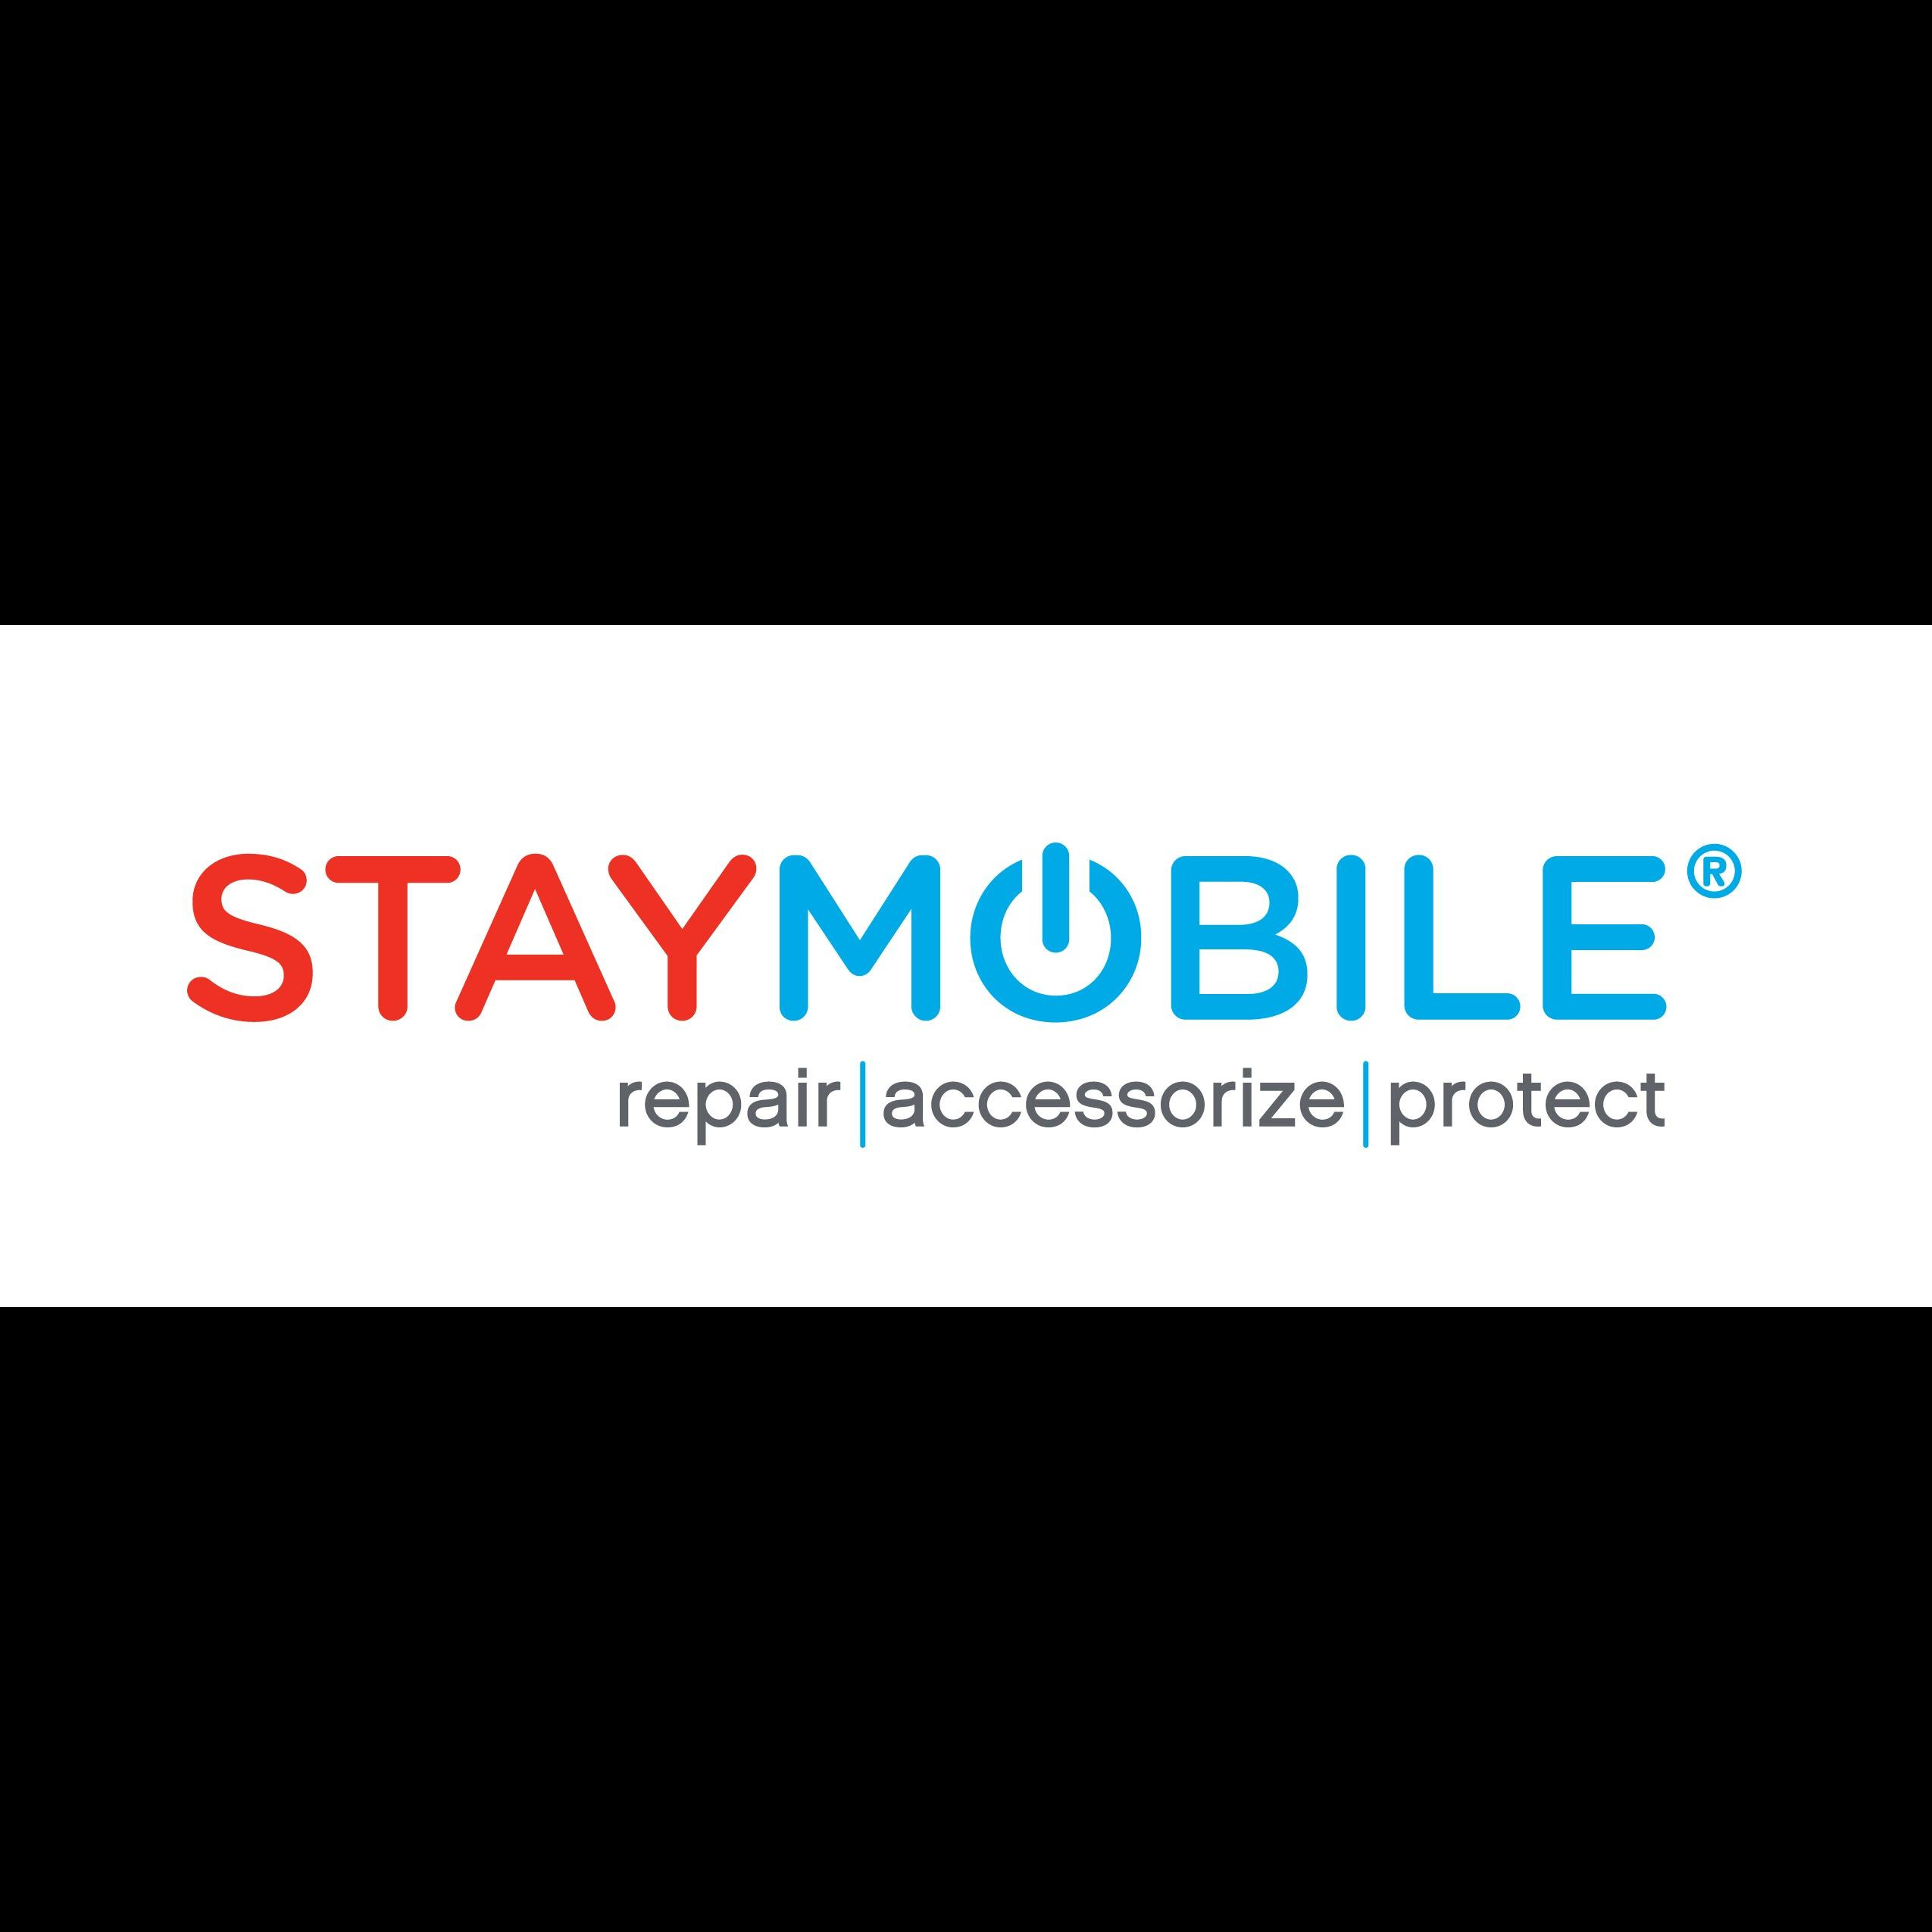 Staymobile image 1